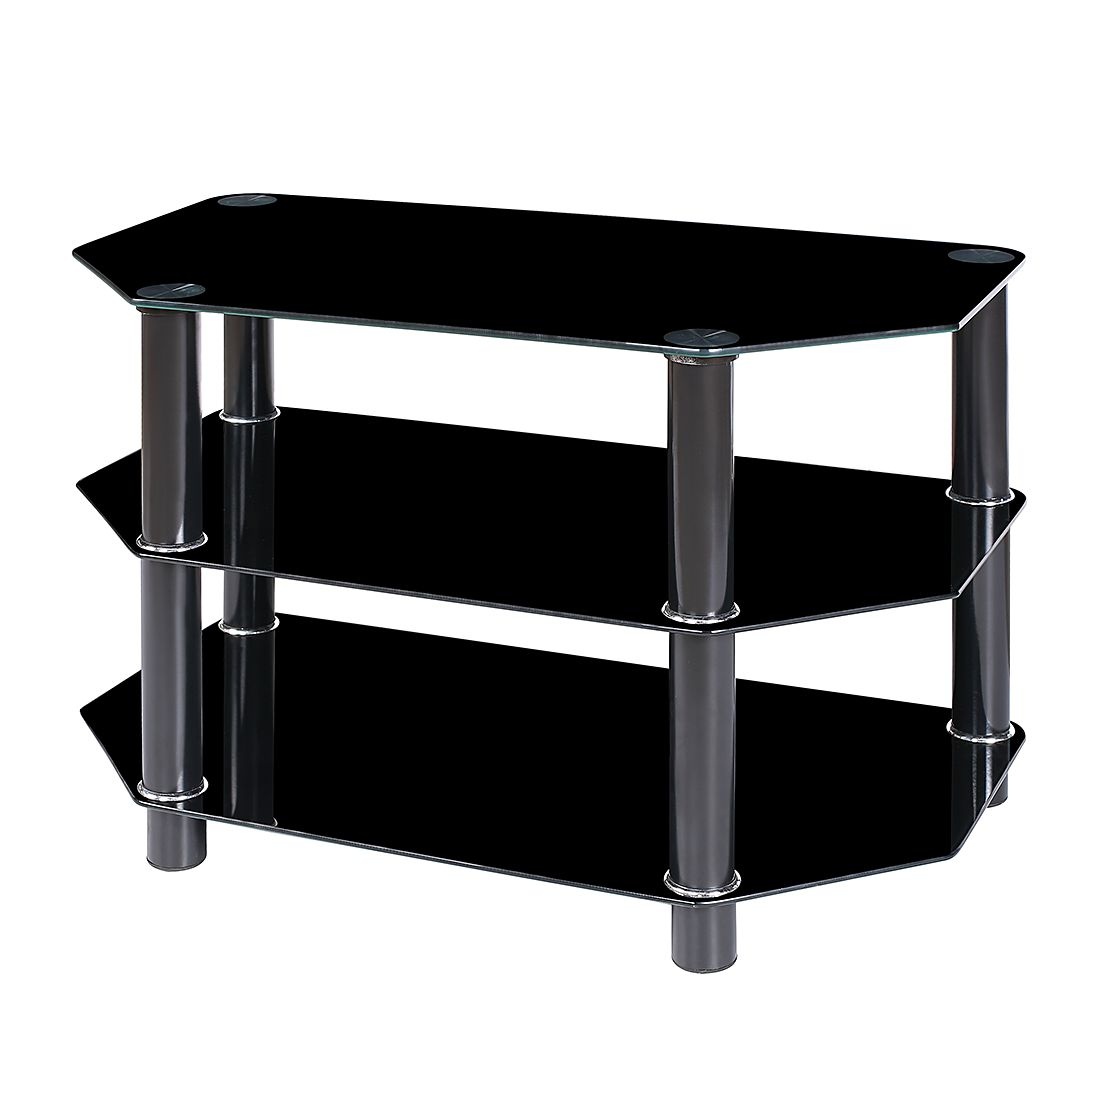 preisvergleich eu tv rack schwarzglas. Black Bedroom Furniture Sets. Home Design Ideas